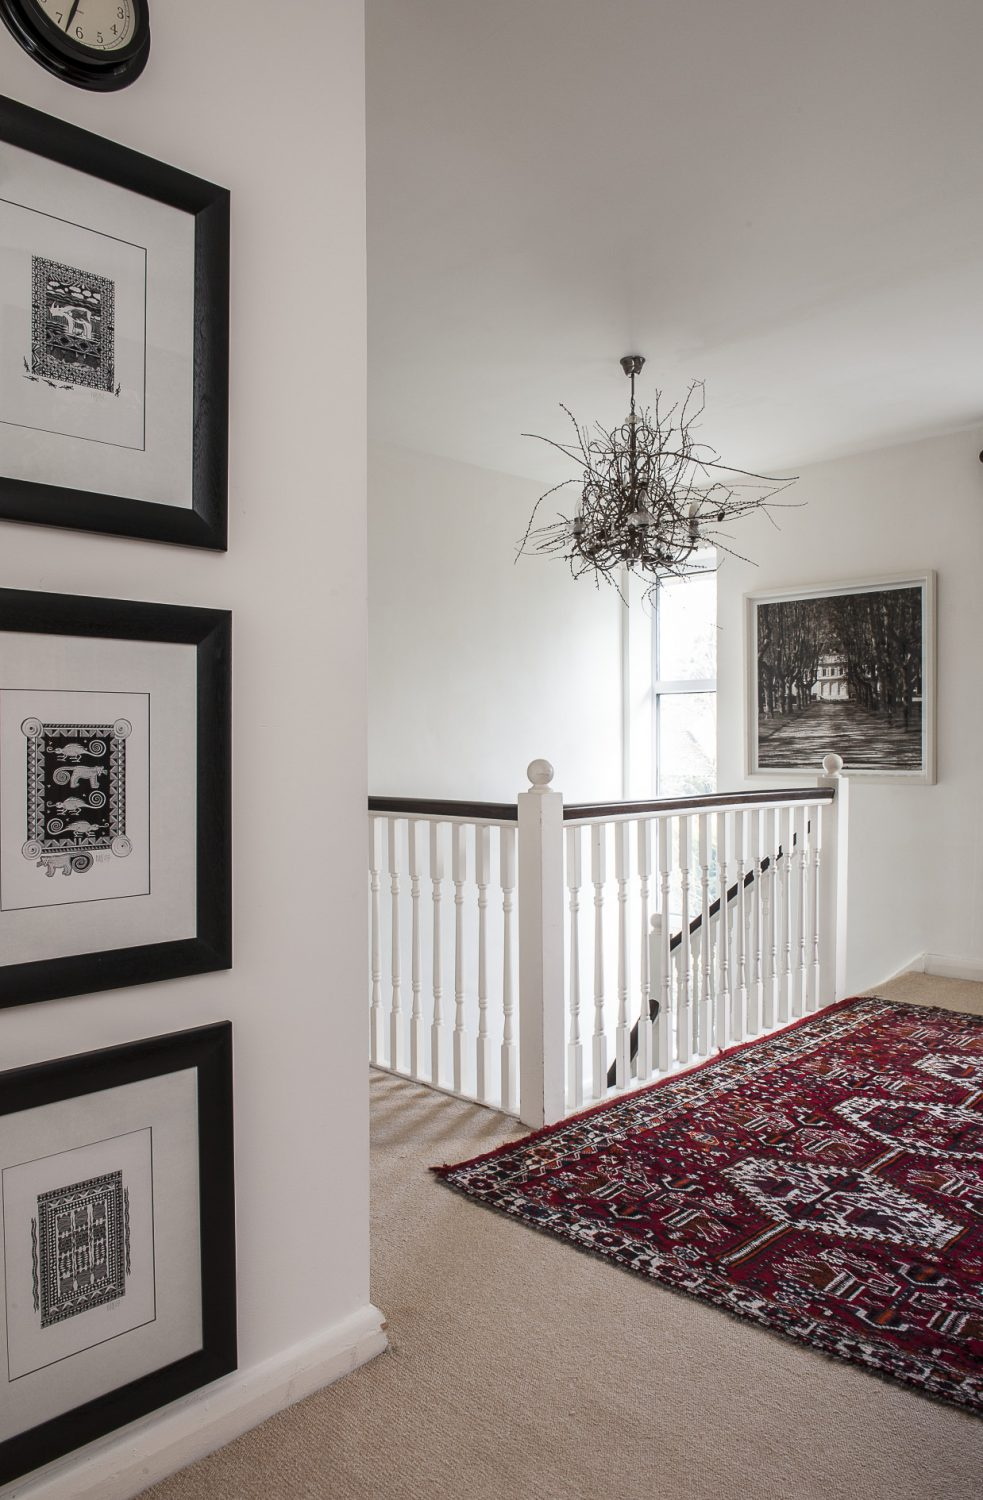 On the top floor landing is a chandelier that, at Christmas, the family decorated with twigs gathered on a country walk